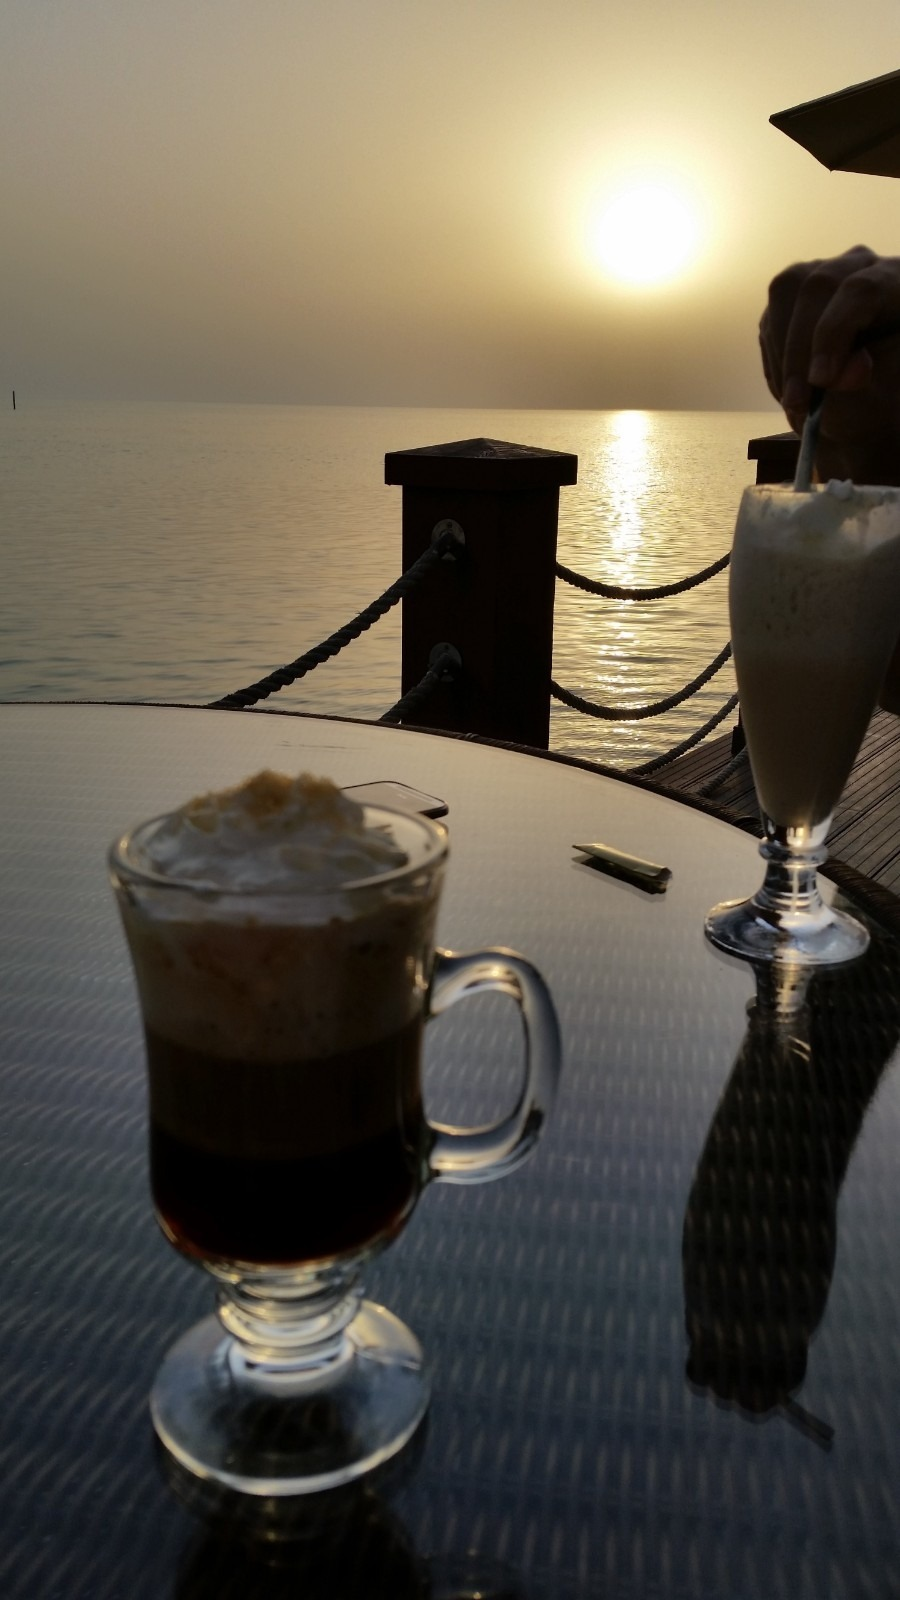 Coffee at tapas restaurant @ Hotel Sofitel Thalassa Sea & Spa - Bahrain